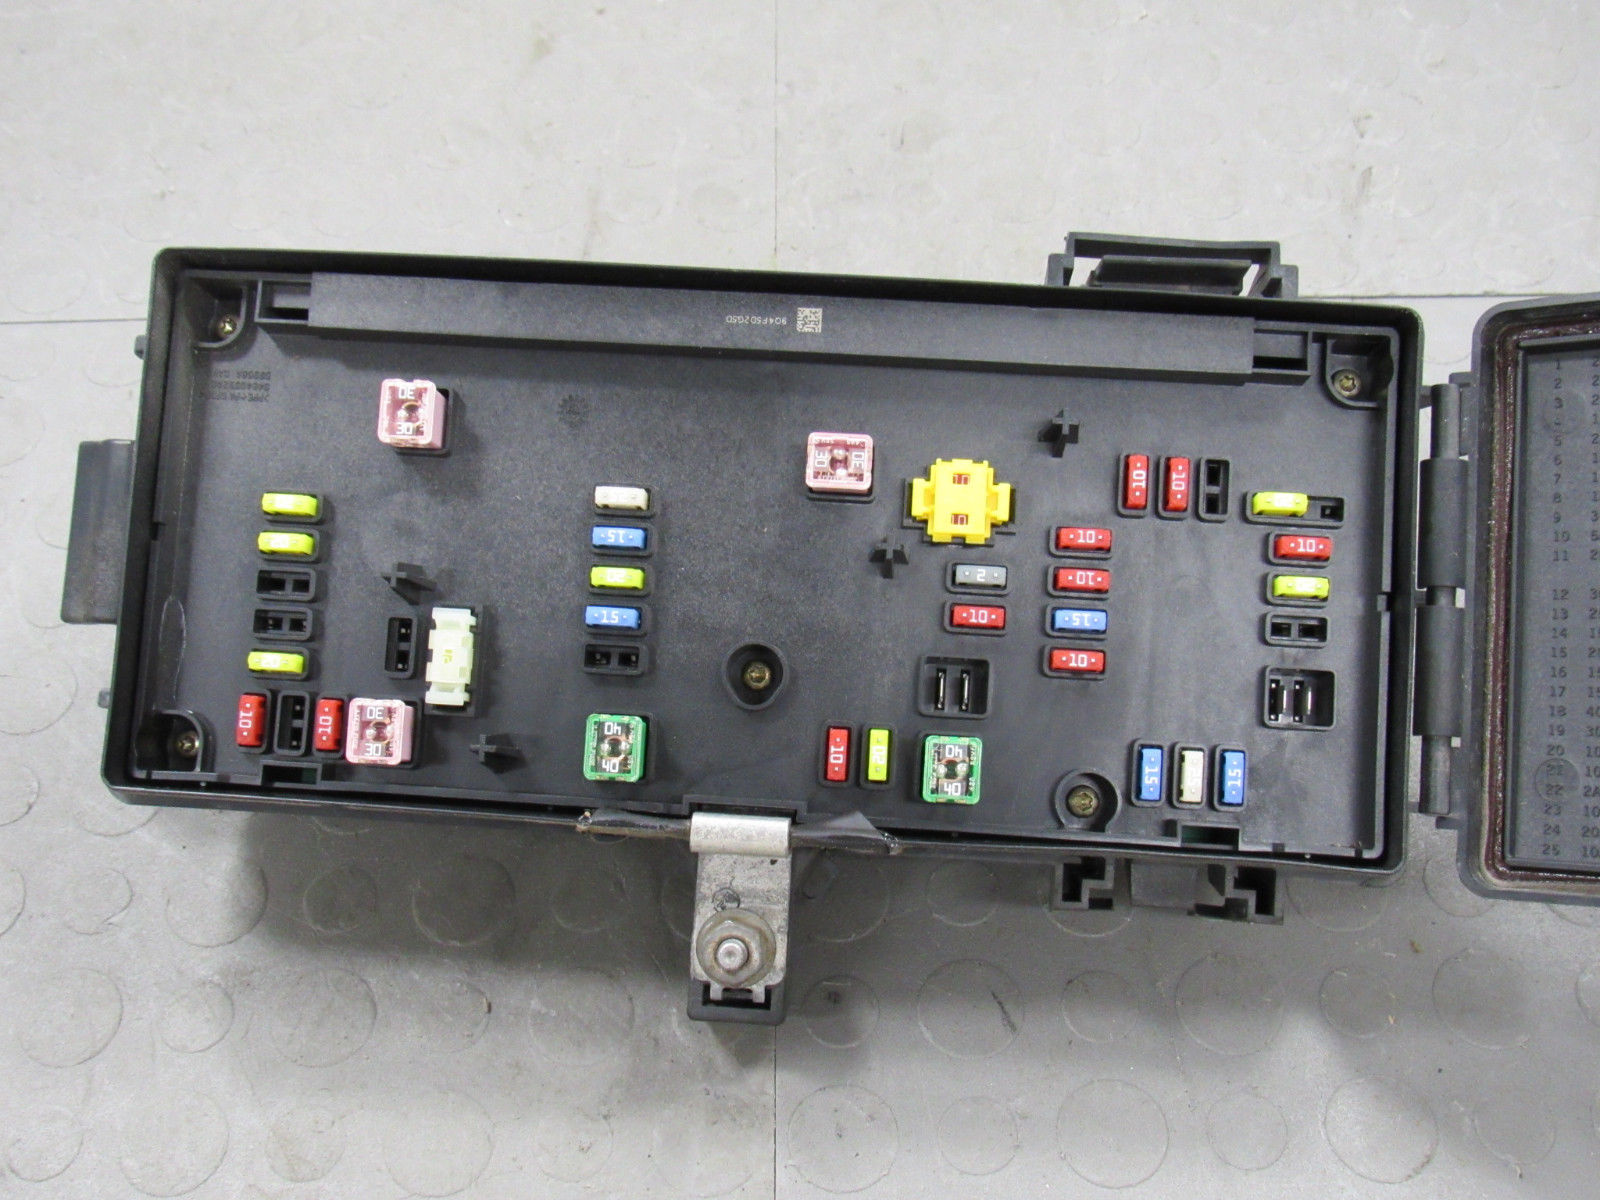 2011 Dodge Ram 2500 Fuse Diagram Wiring Library 1500 Box Tipm Fuel Pump Relay U2022 Slt